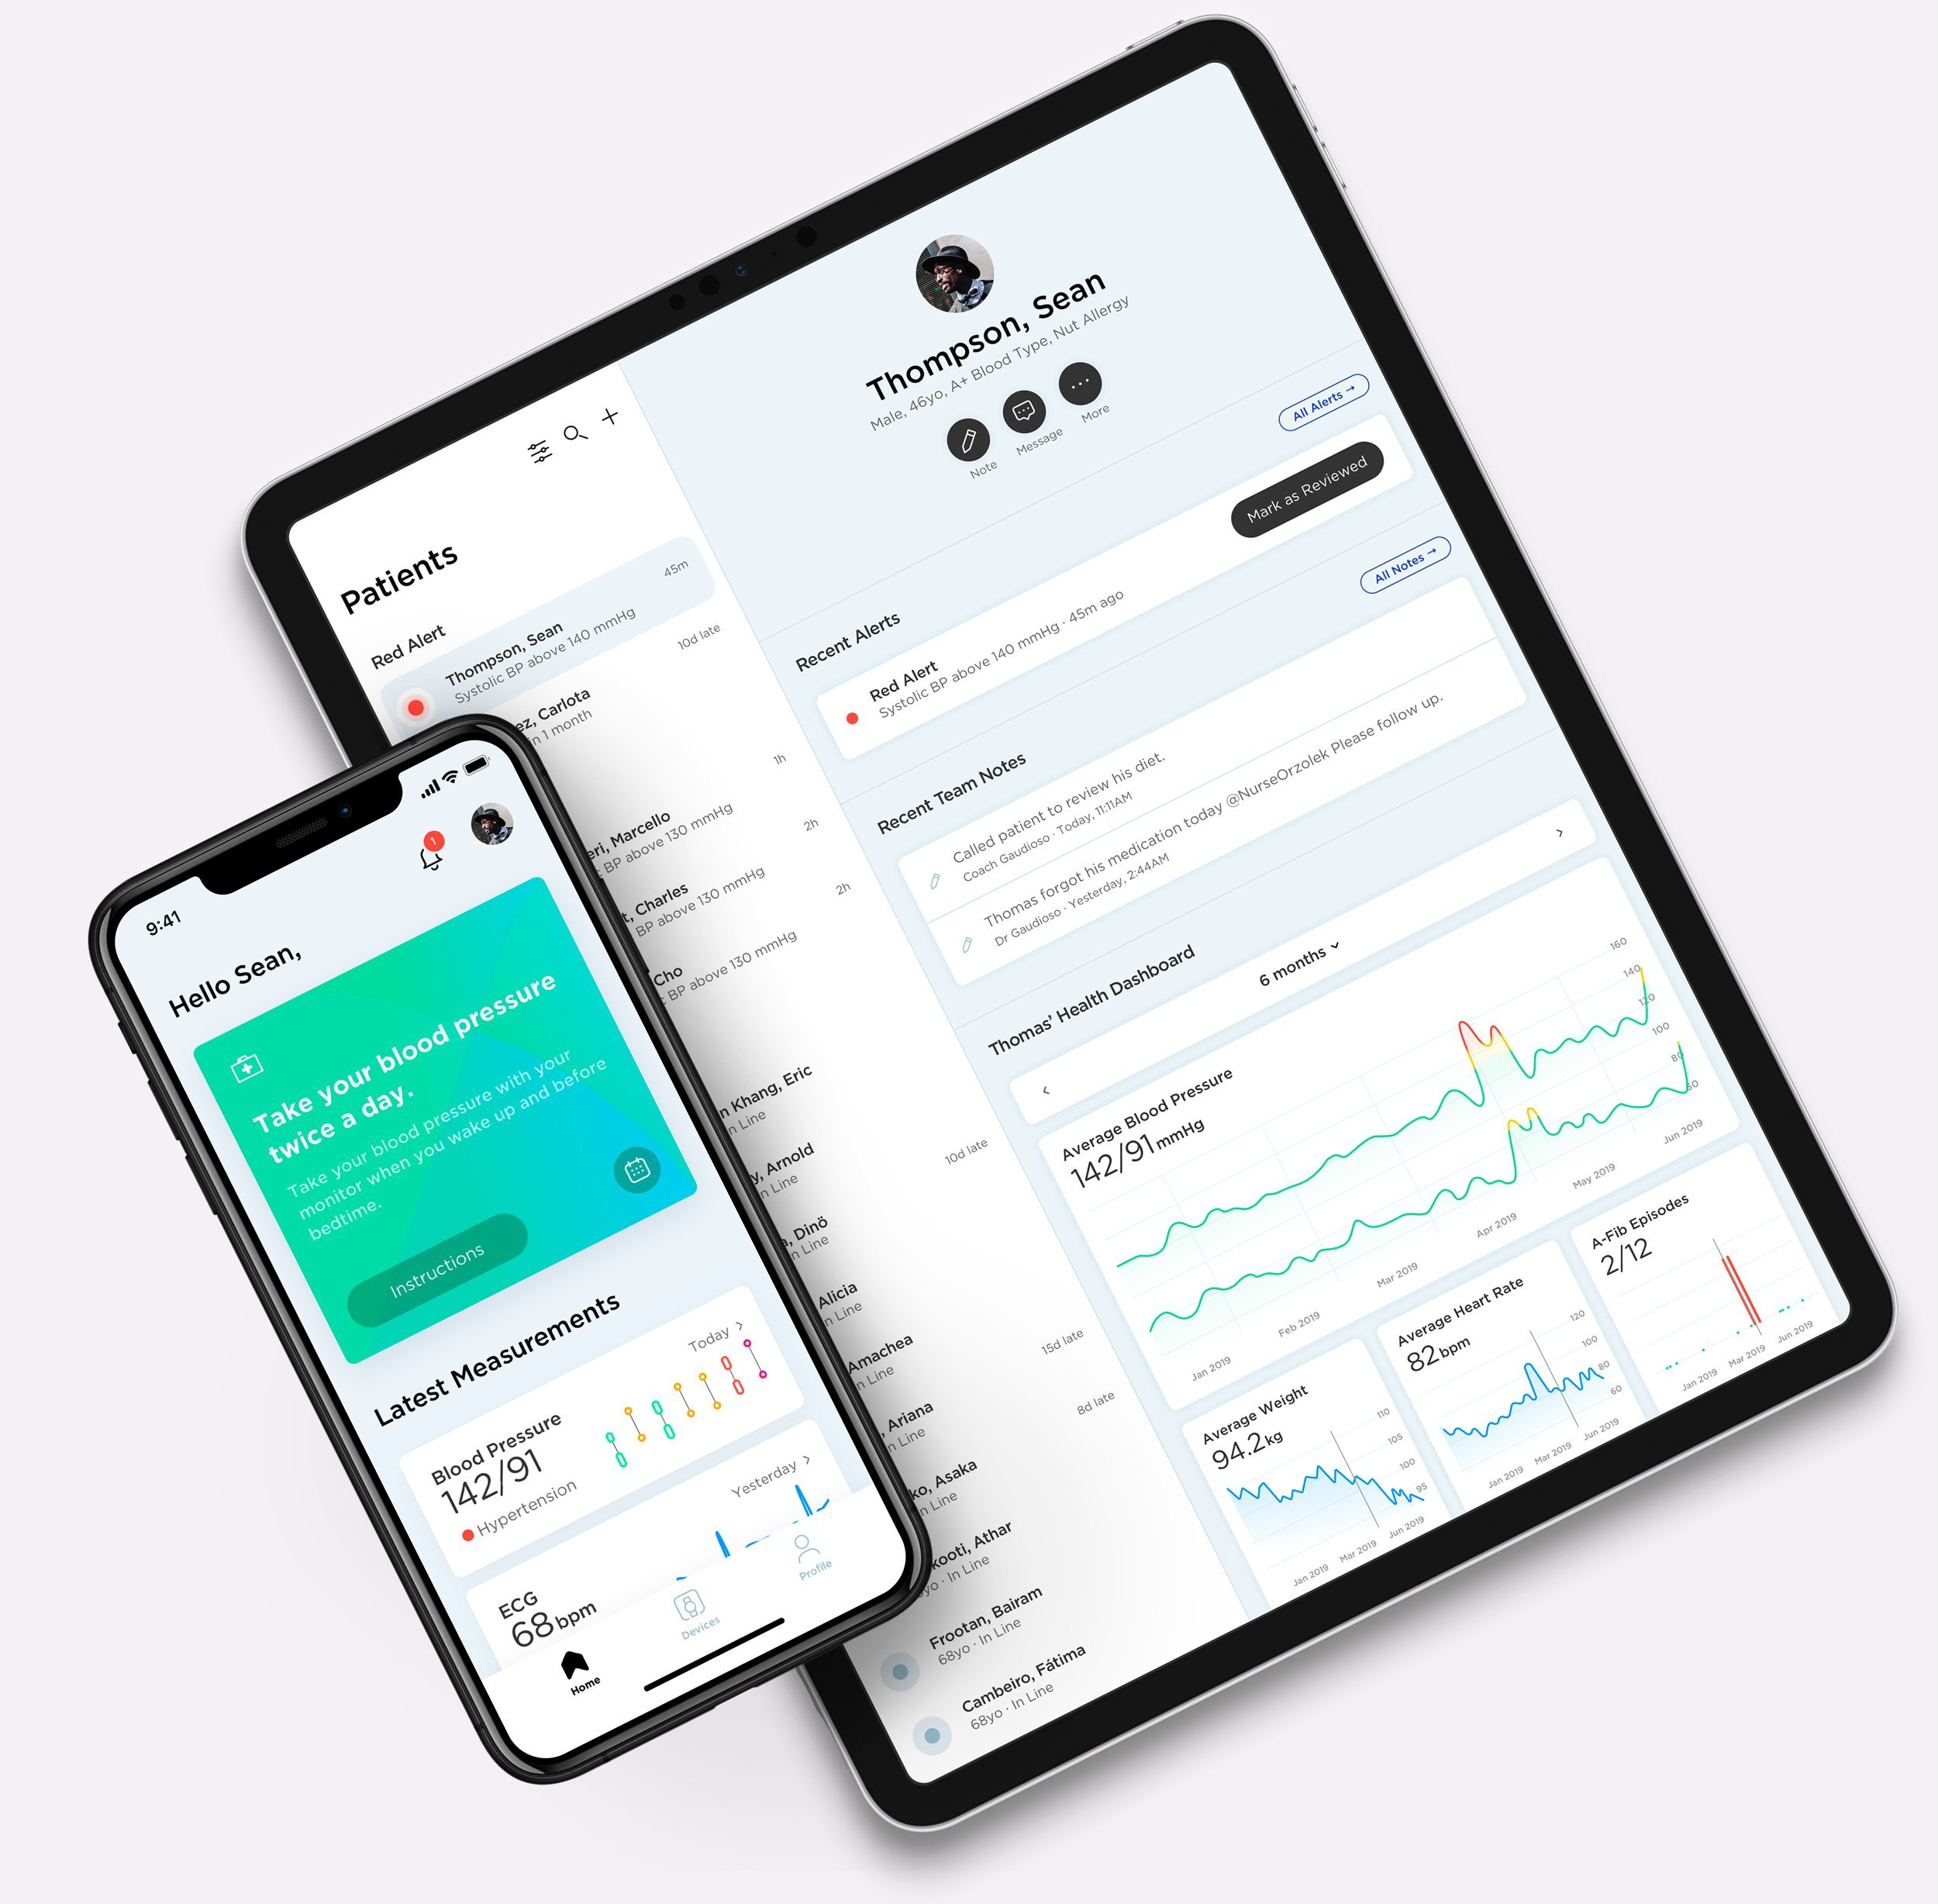 Withings Forms Dedicated B2B Division for Medical Professionals